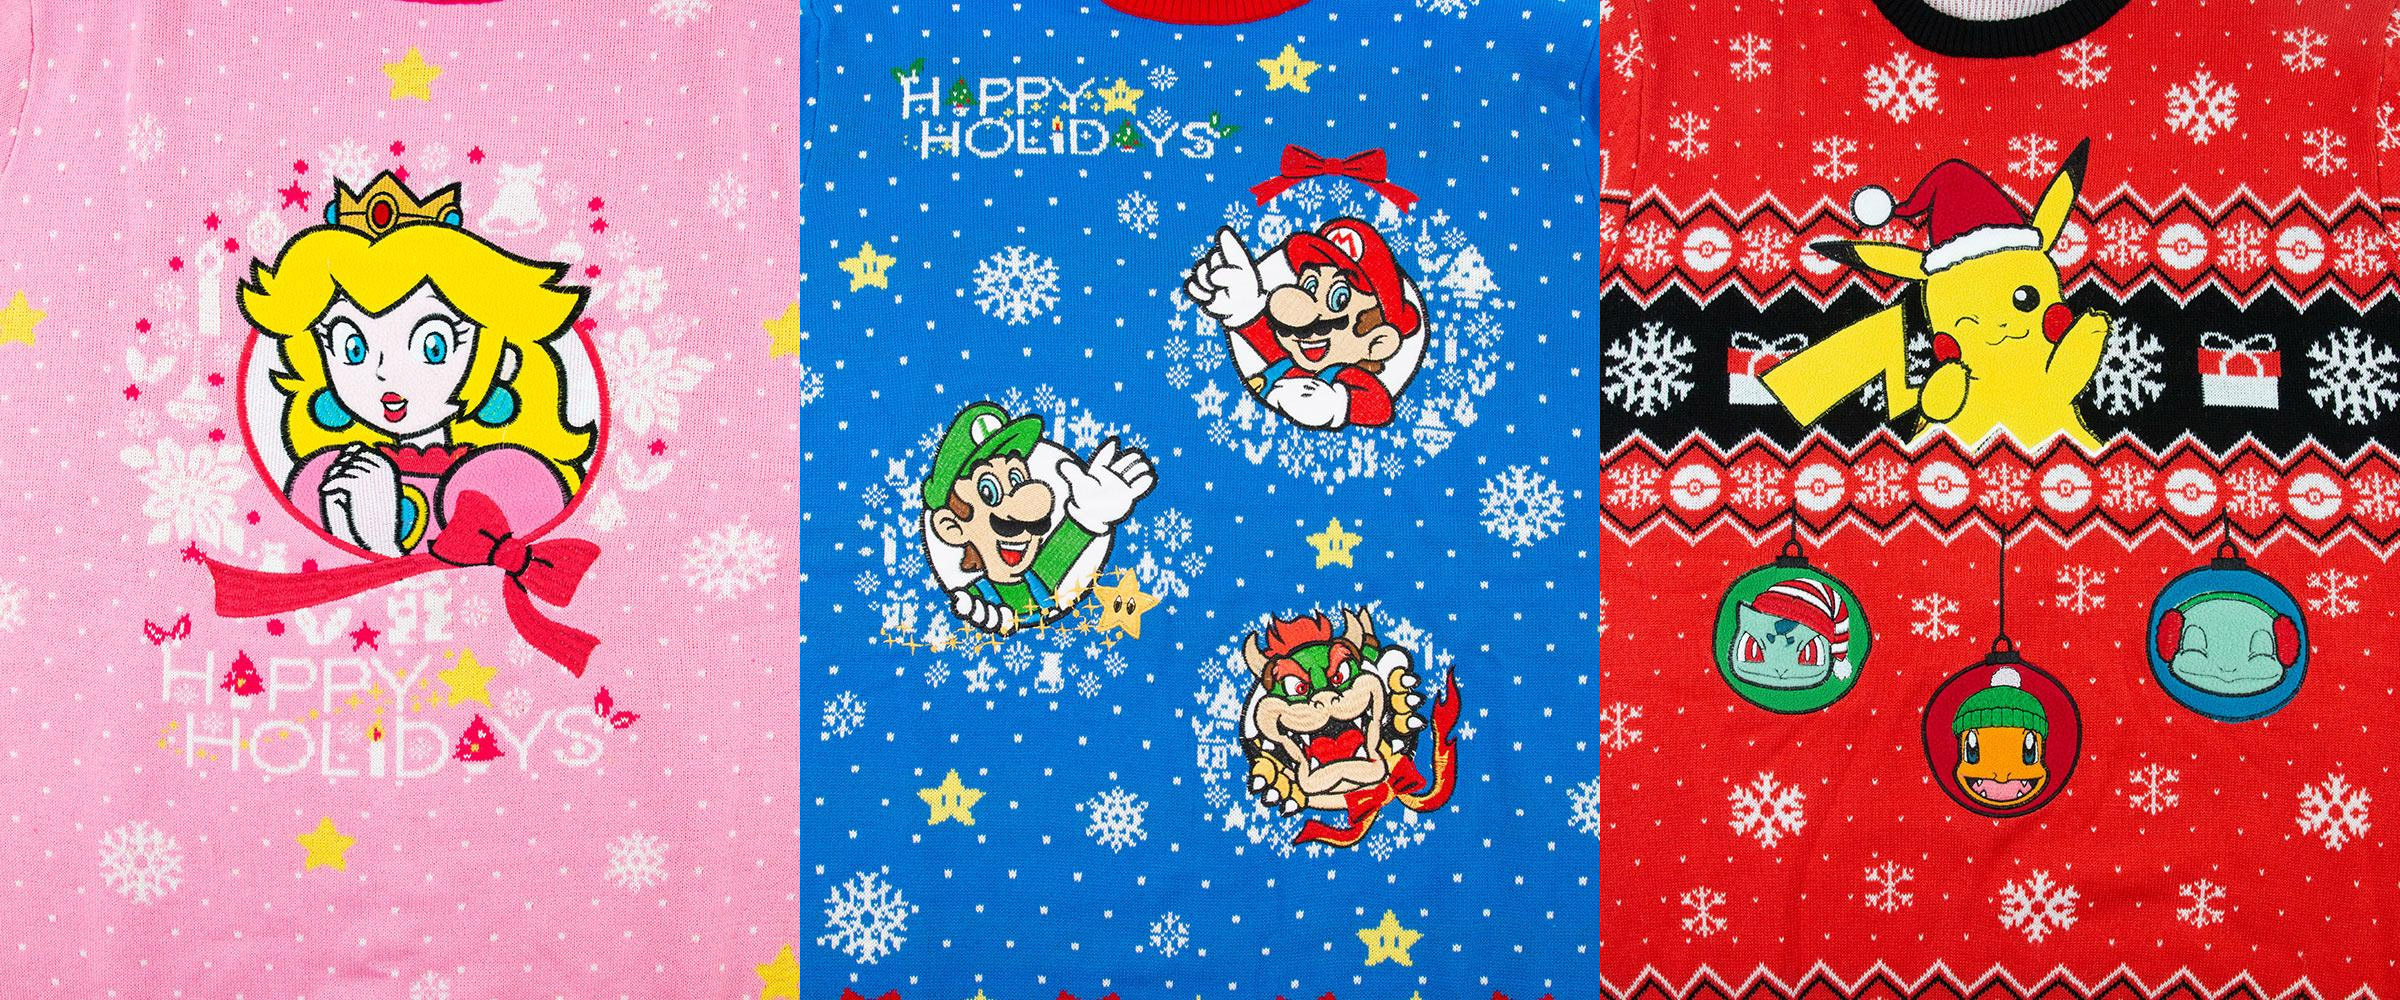 Nintendo's Christmas sweaters could be uglier screenshot